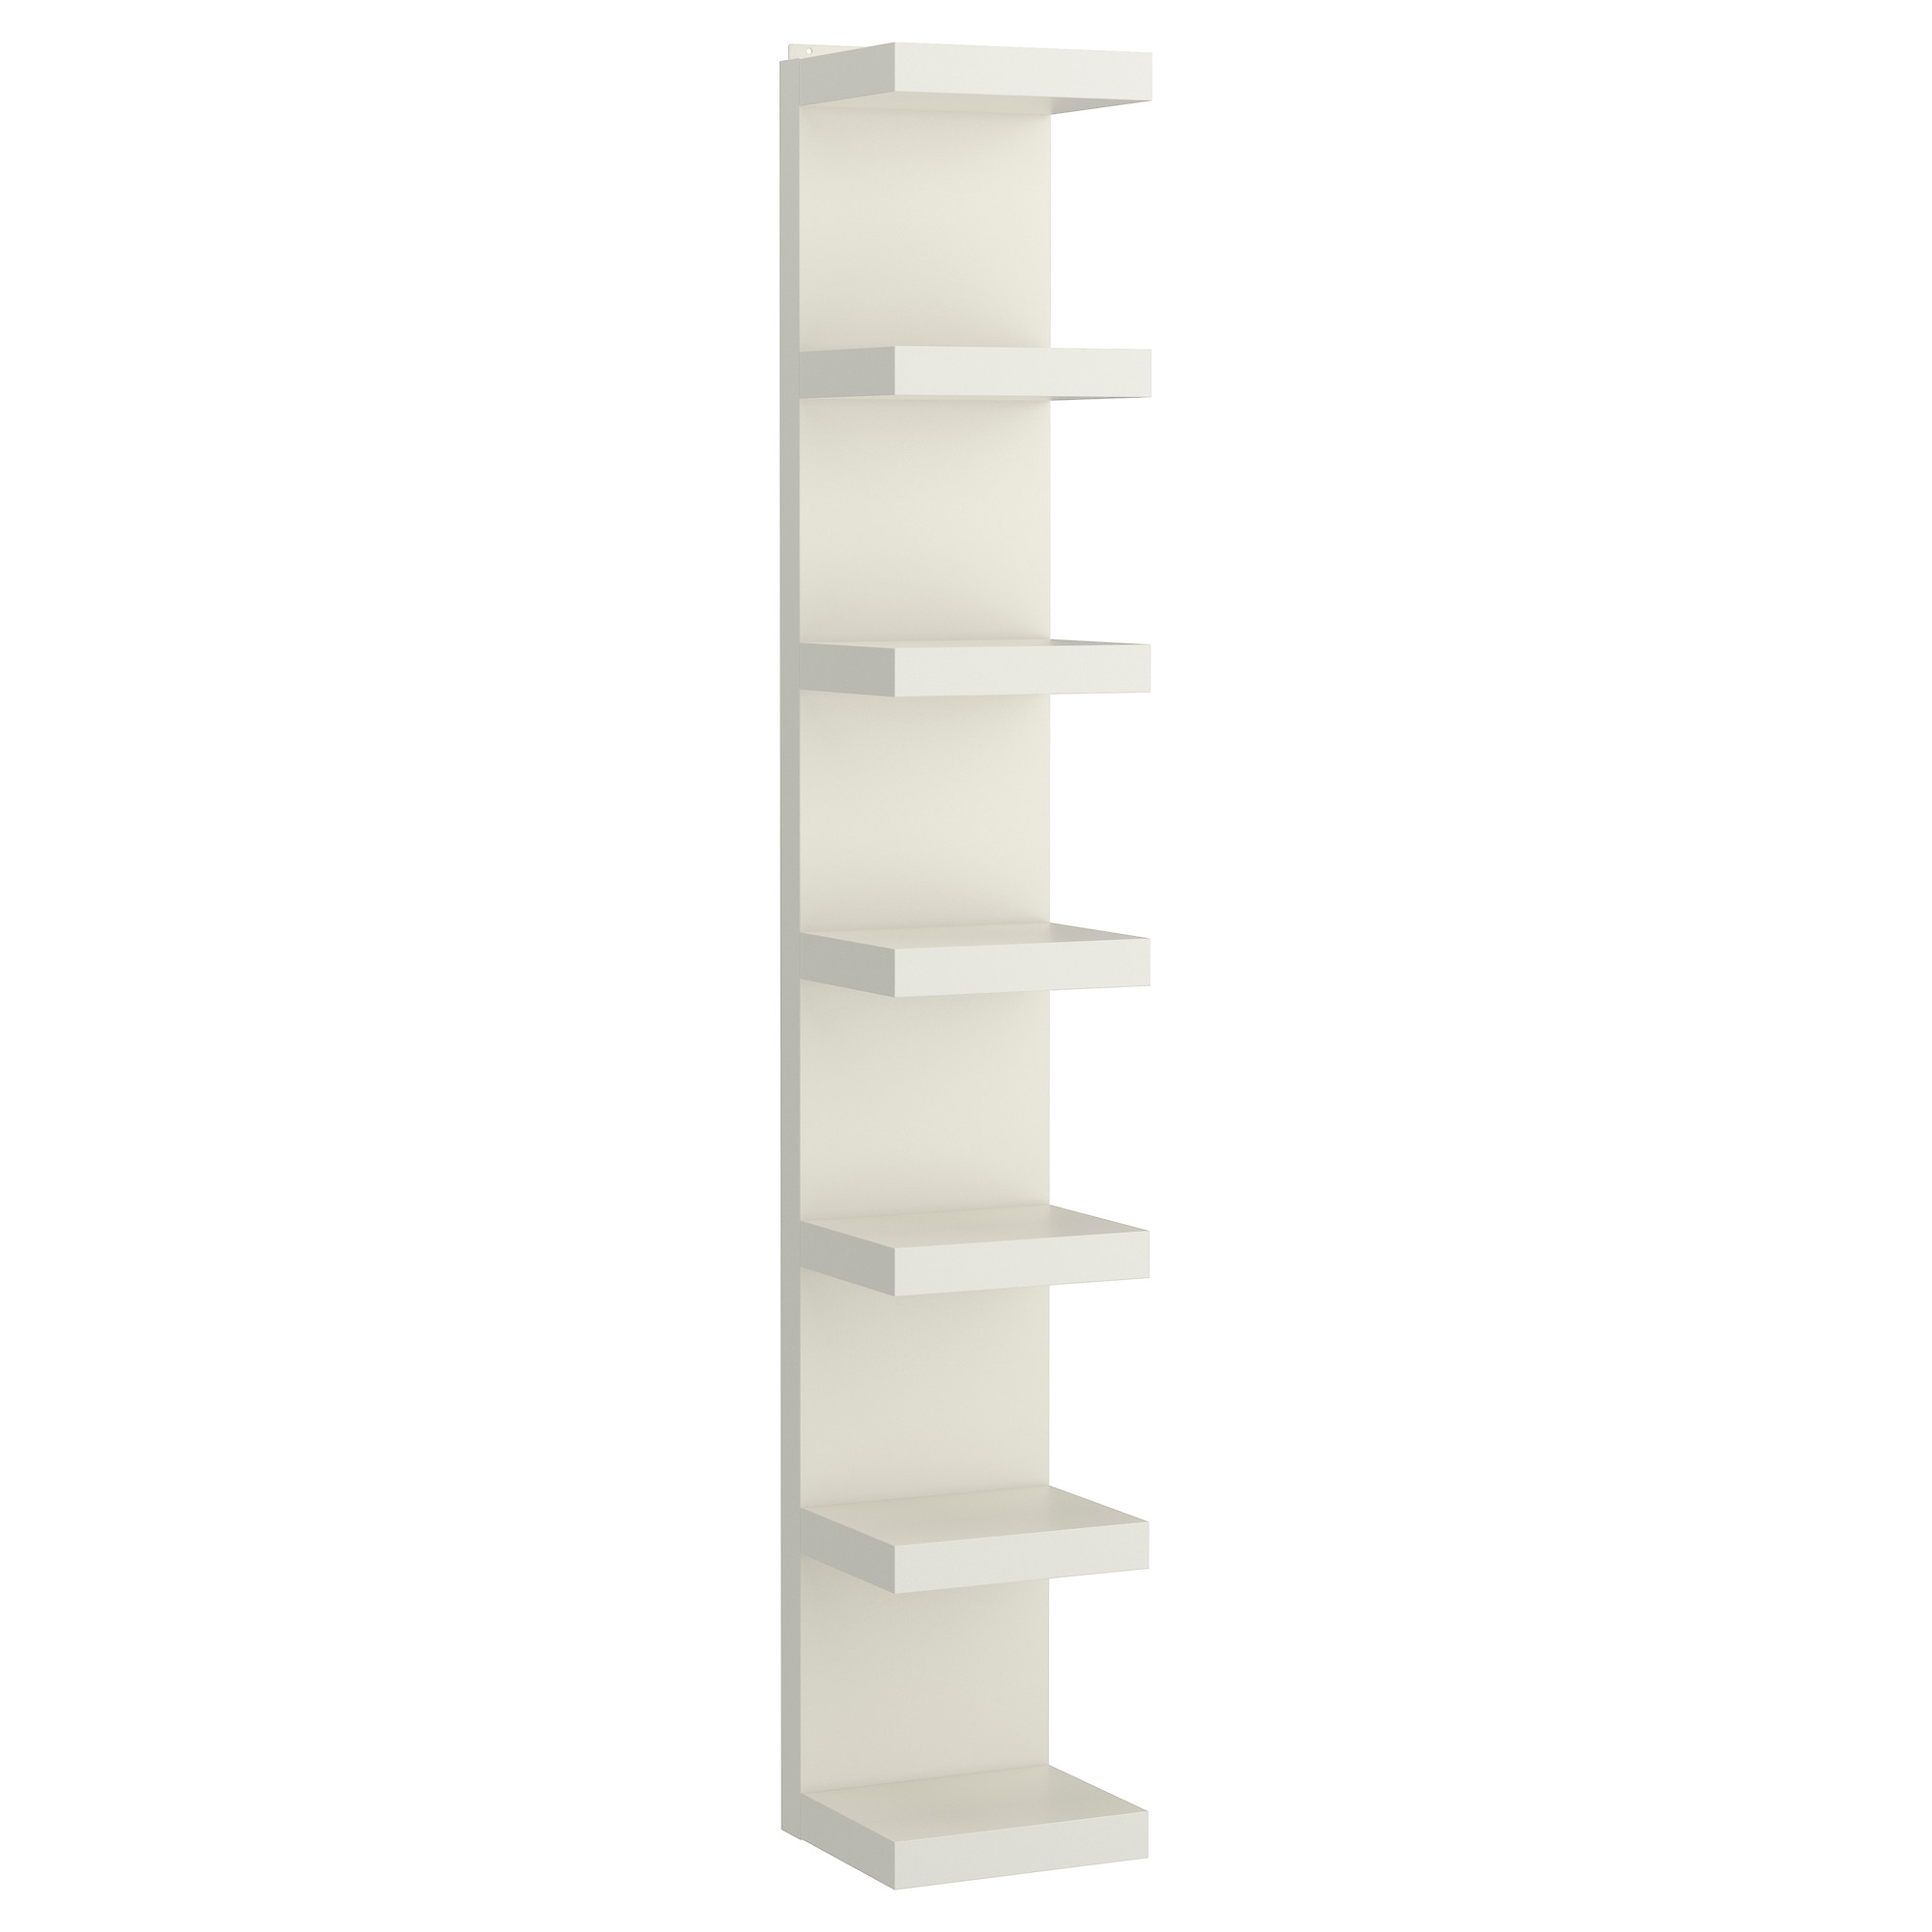 Tall White Bookcases With Latest Lack Wall Shelf Unit – White – Ikea (View 9 of 15)